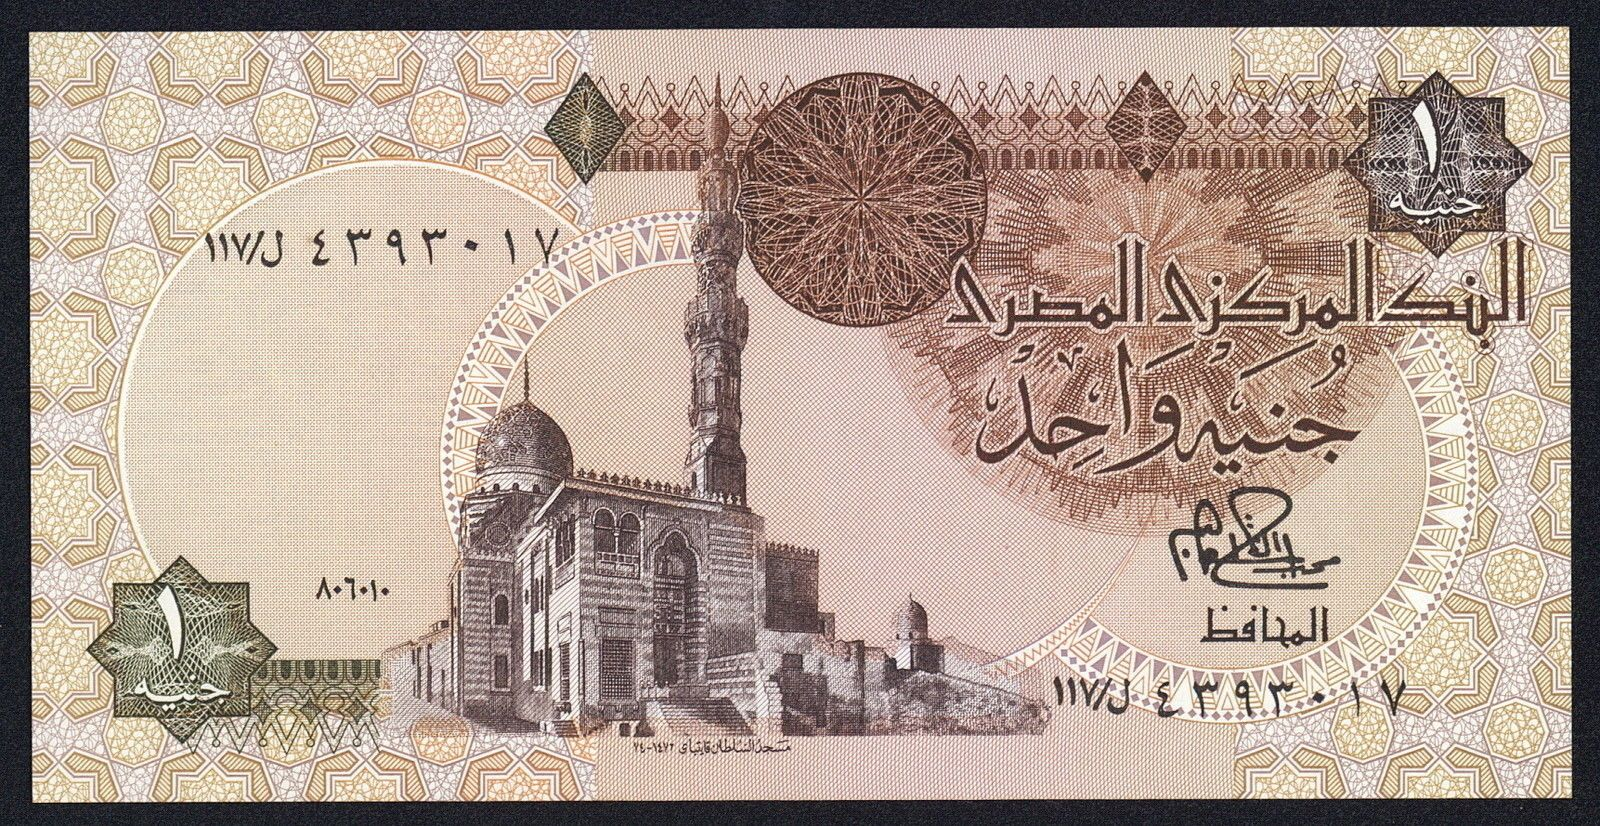 EGYPT UN-CIRCULATED BRAND NEW 50 EGYPTIAN POUND UNCIRCULATED BANKNOTE